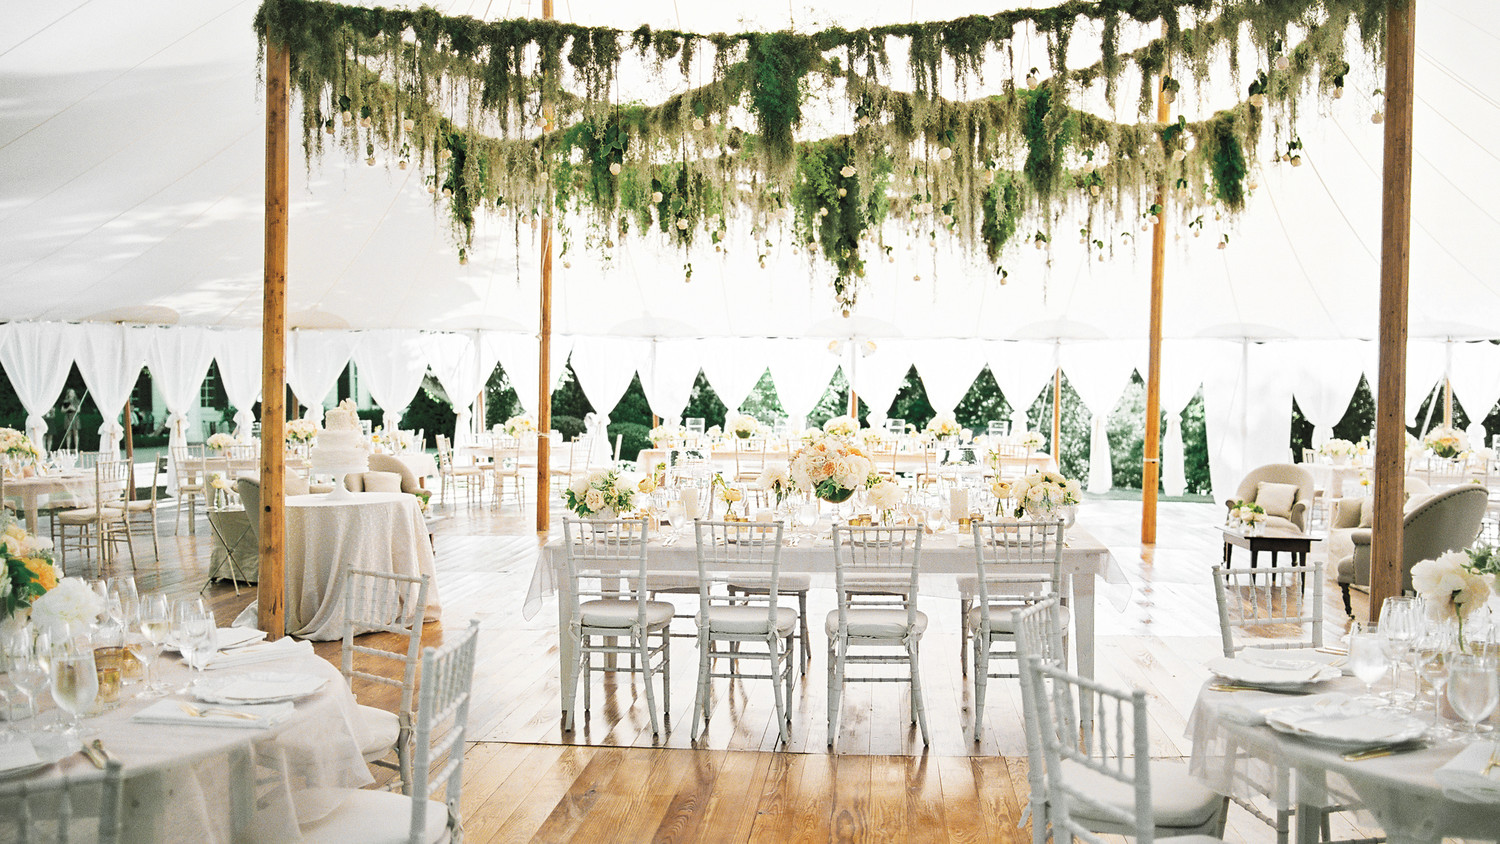 28 tent decorating ideas that will upgrade your wedding reception 28 tent decorating ideas that will upgrade your wedding reception martha stewart weddings junglespirit Gallery